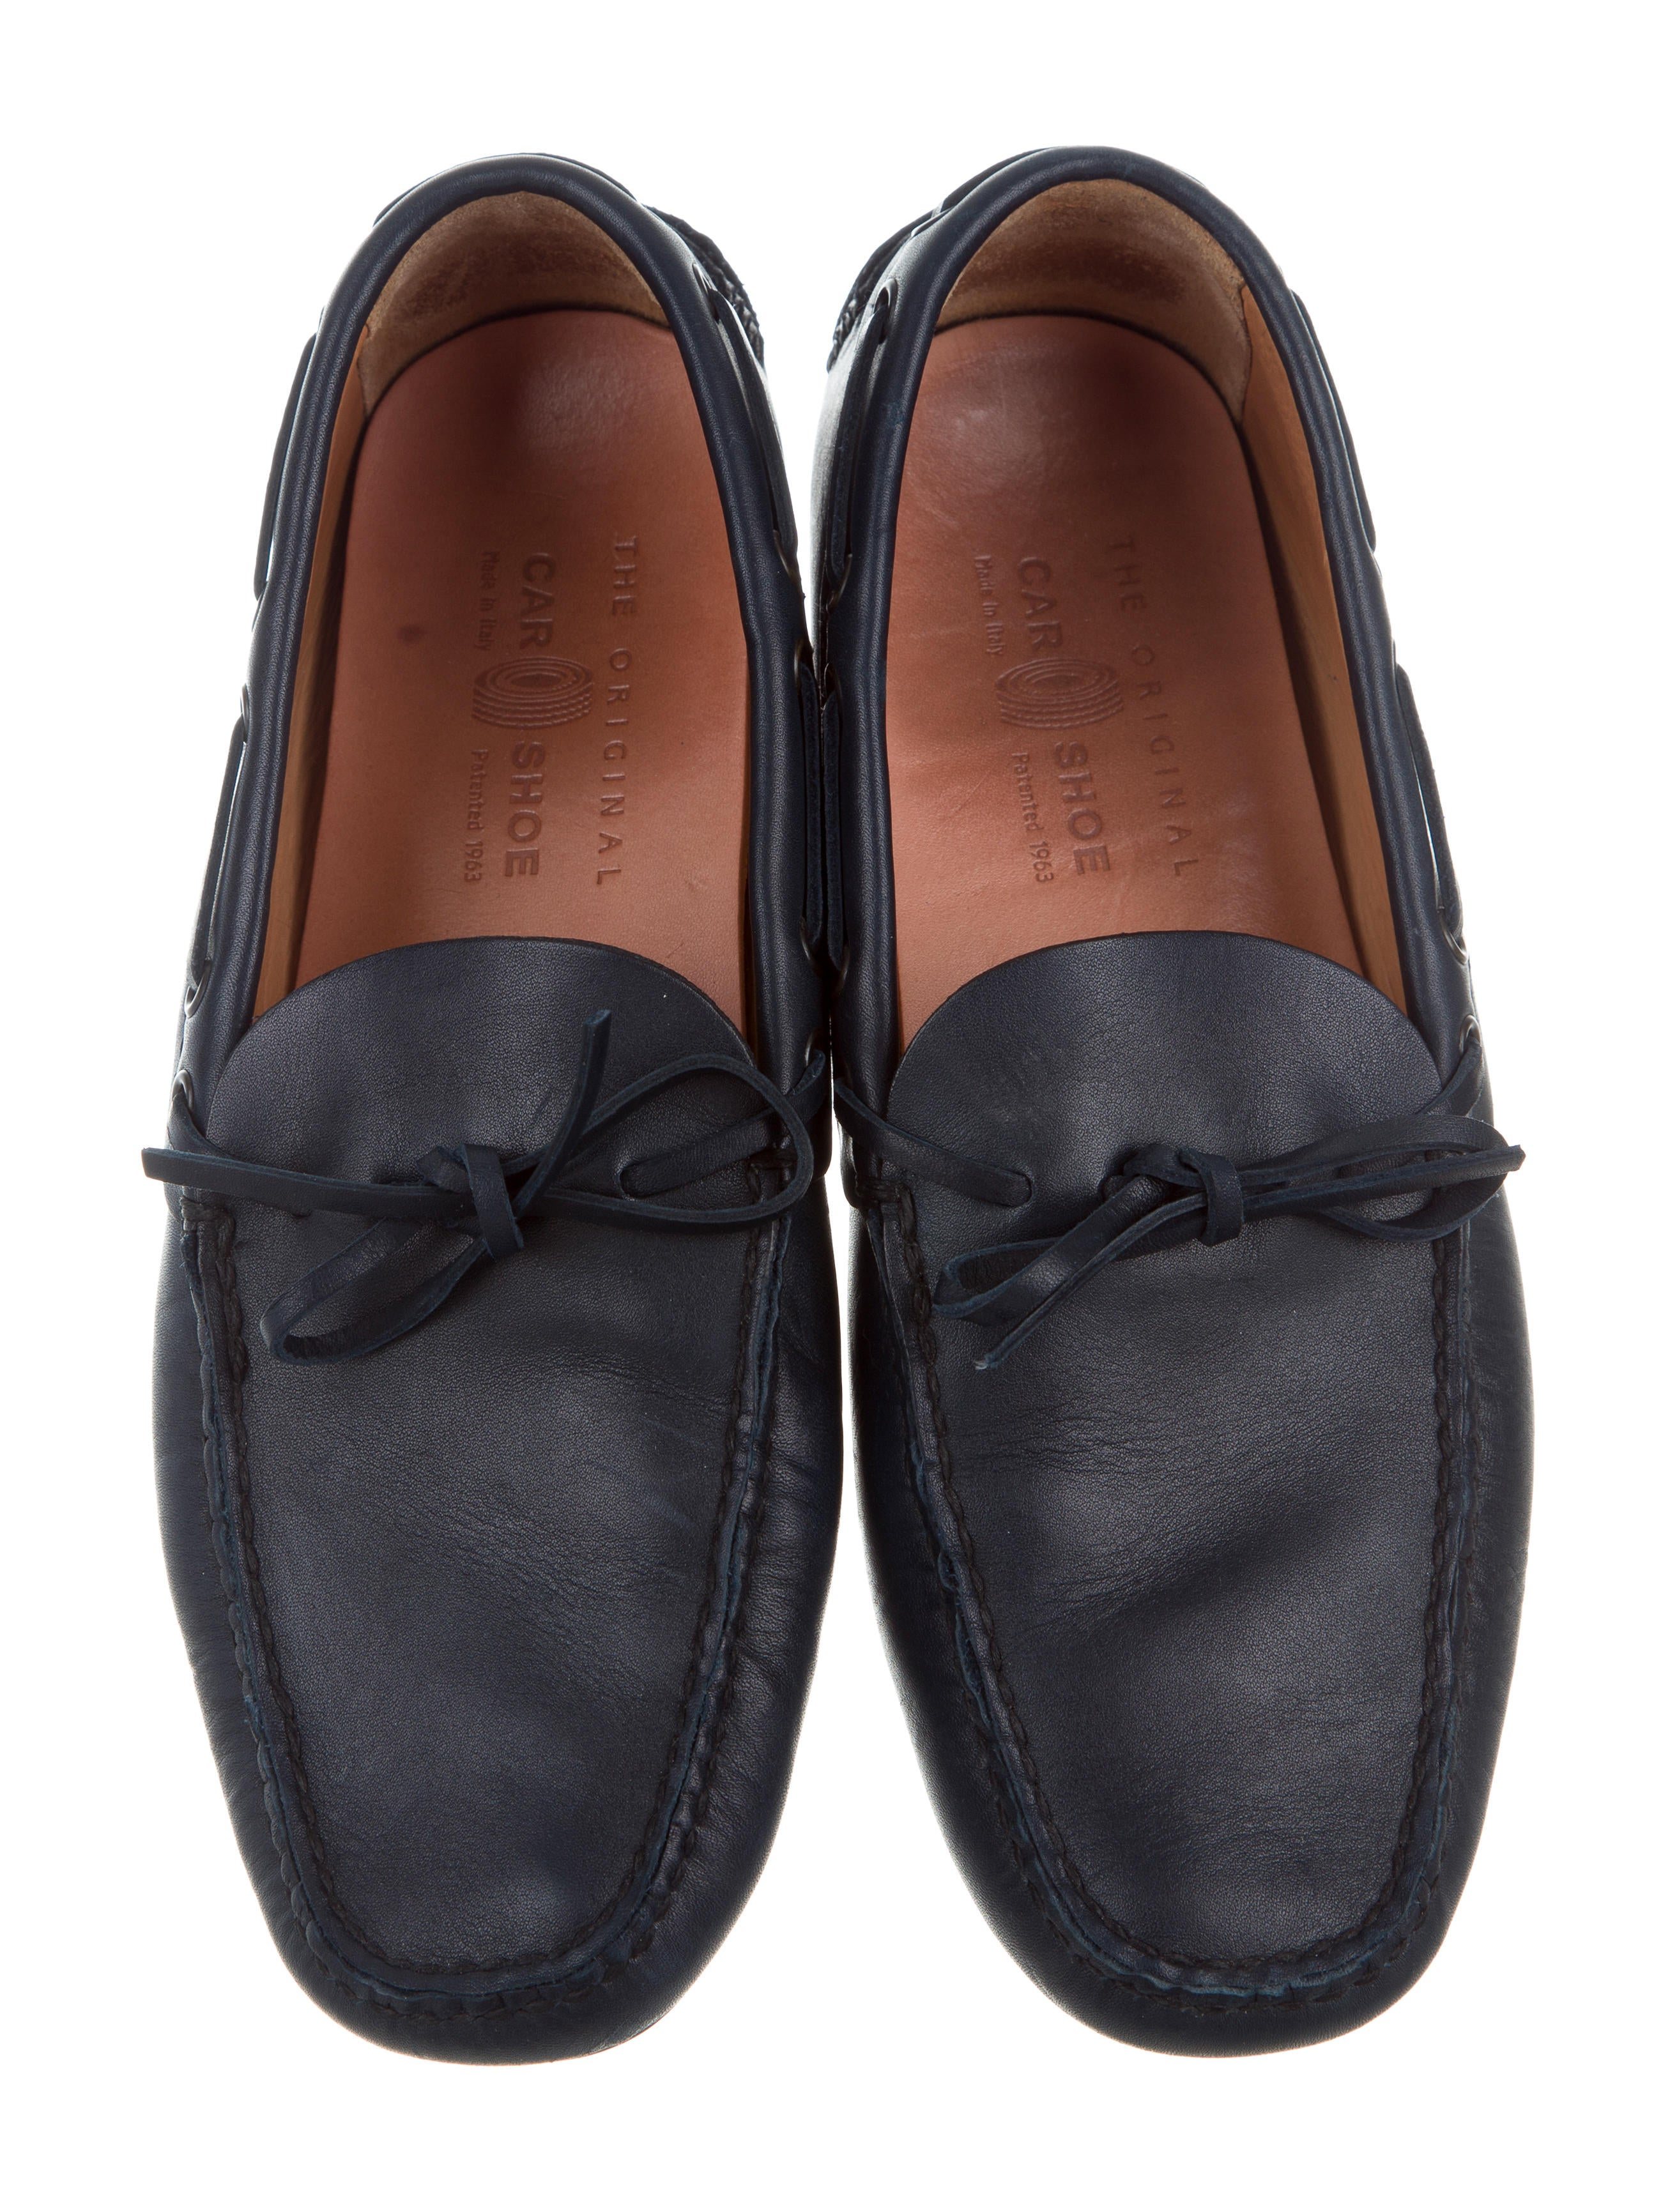 car shoe leather driving loafers shoes wcs20123 the